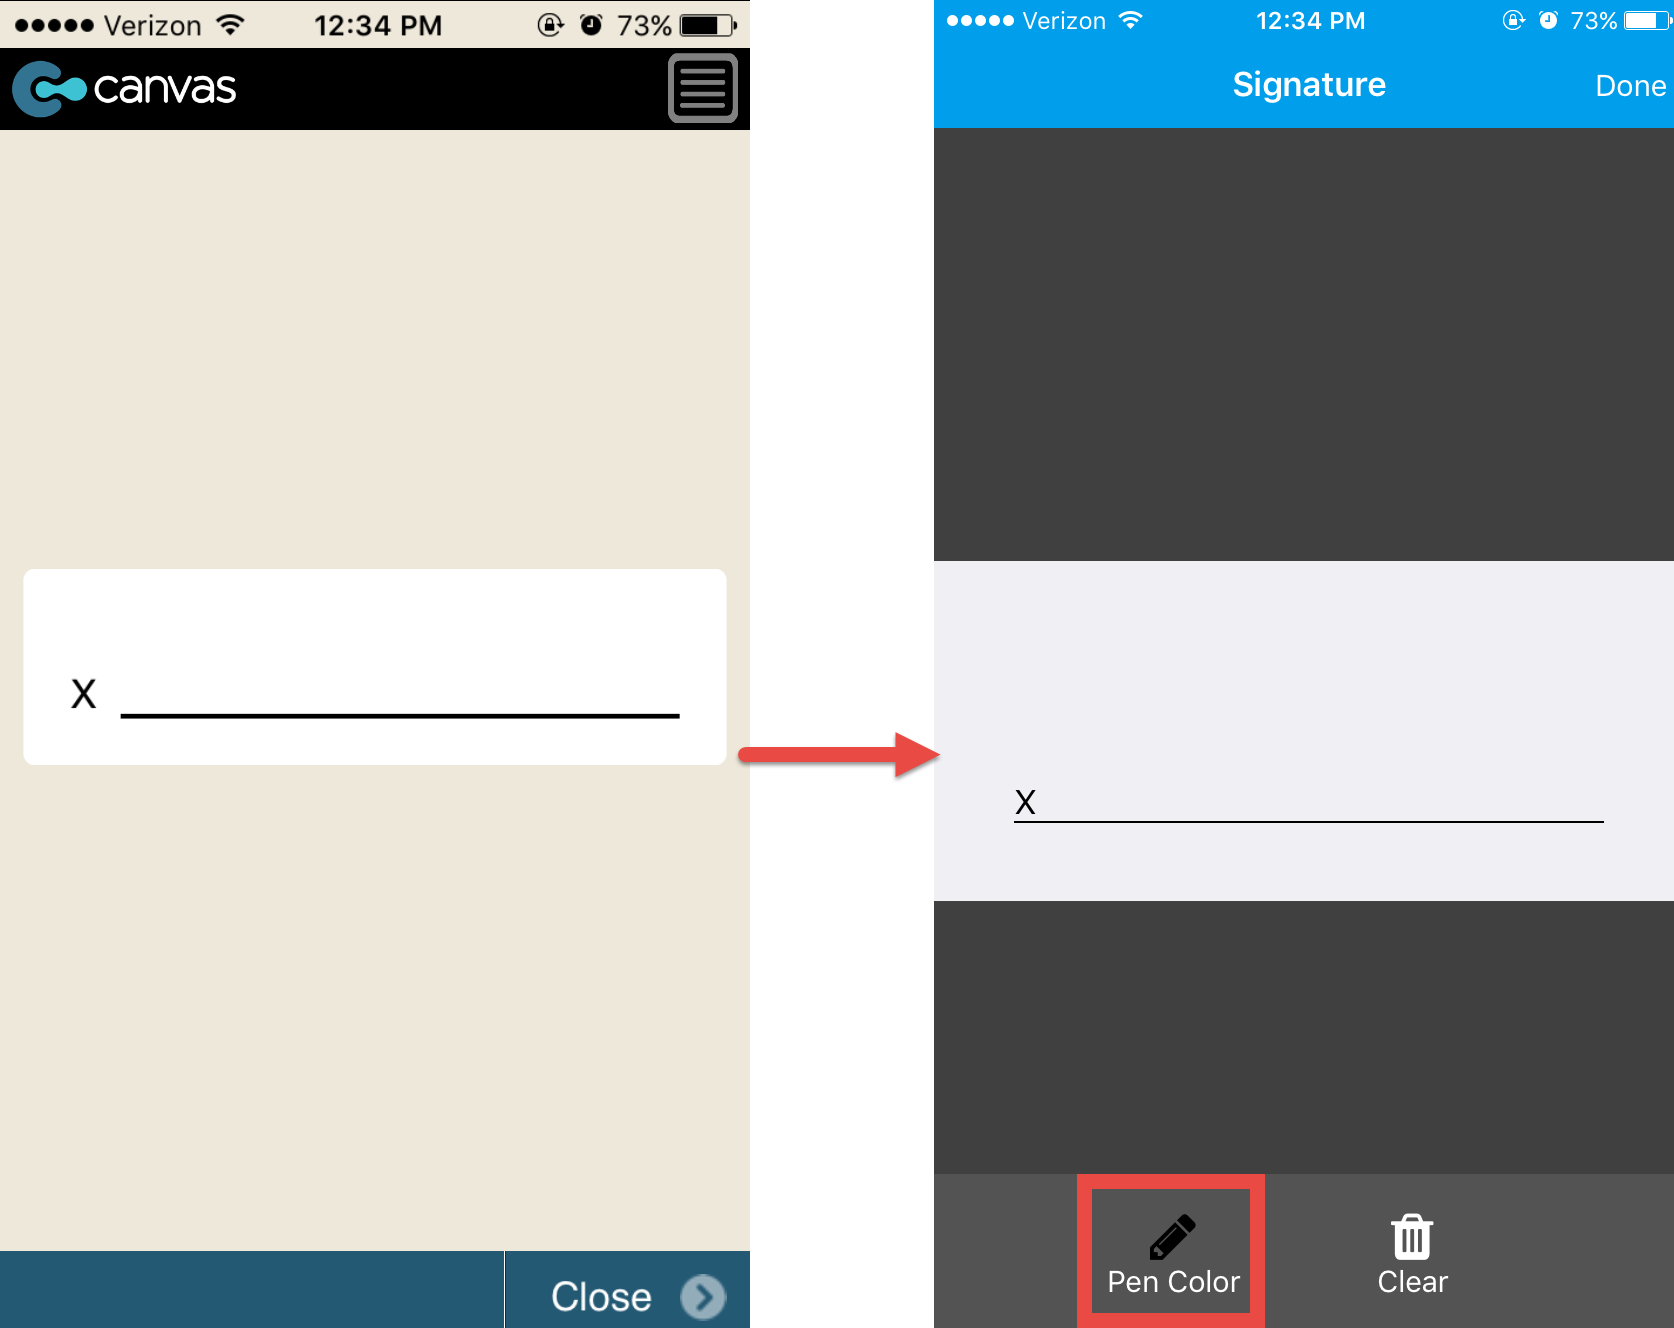 Canvas iOS app: Old signature capture style vs. new 2016 style